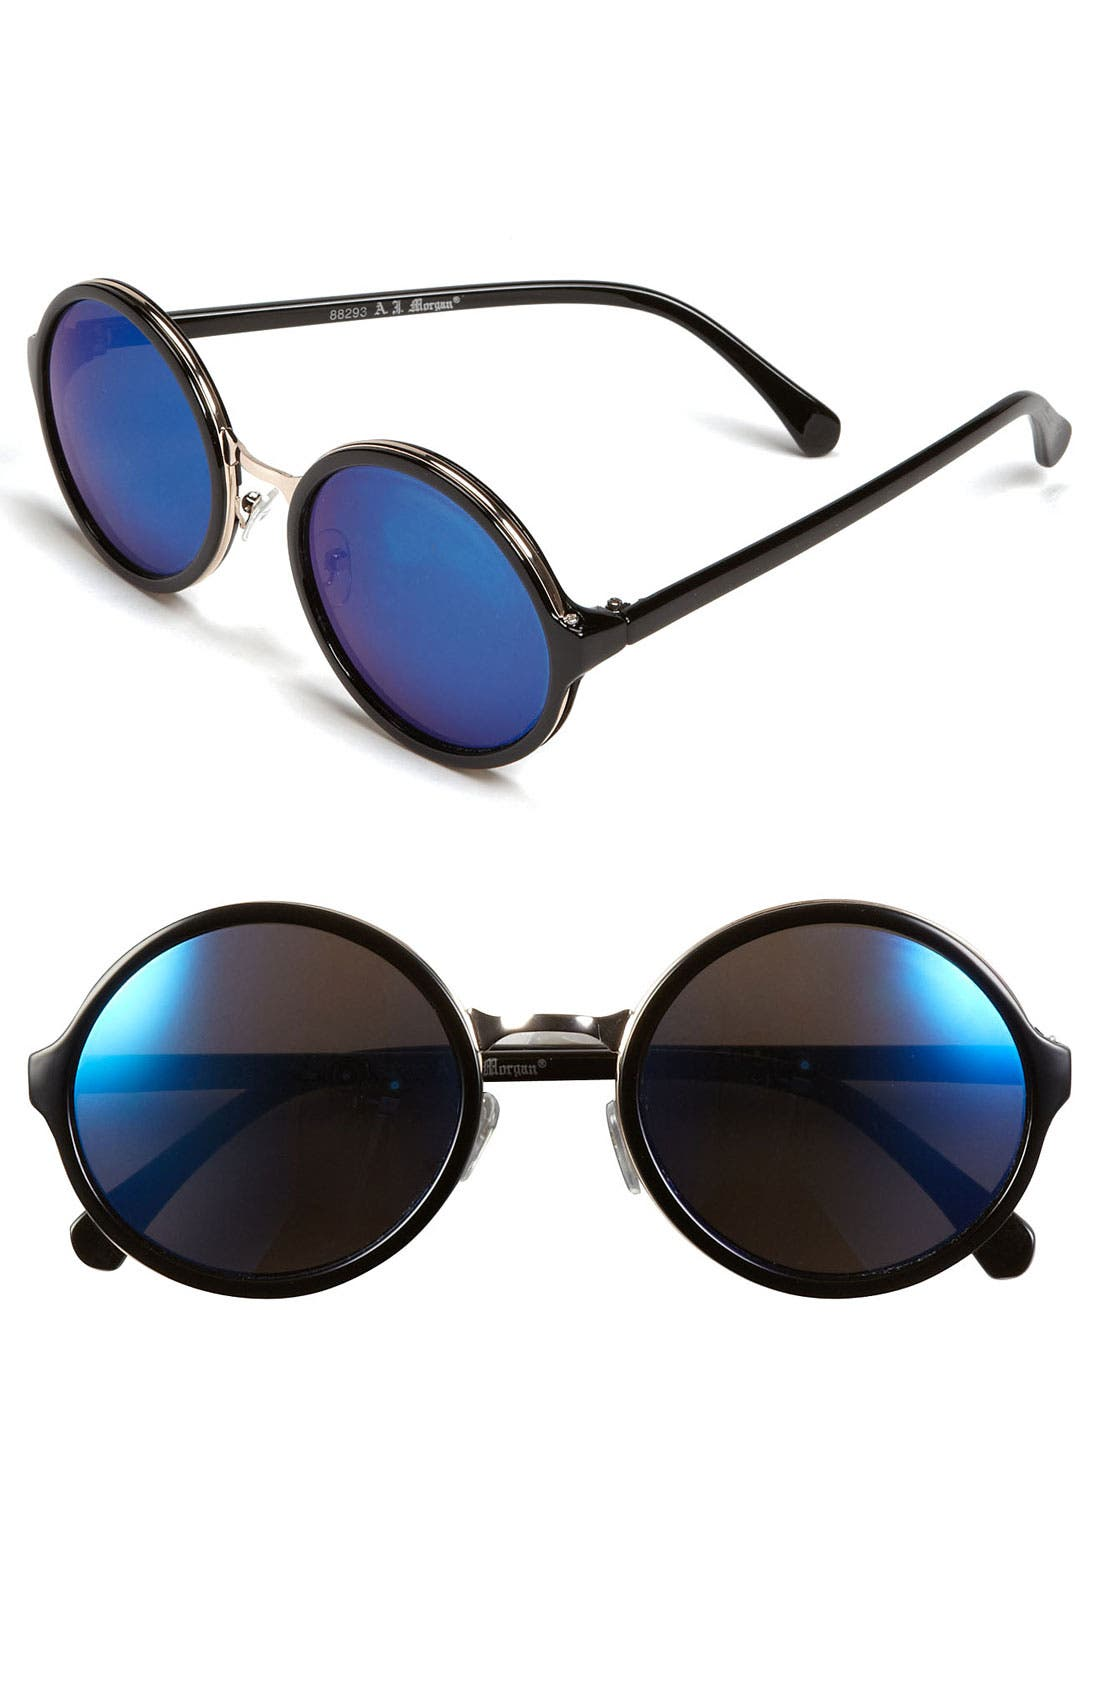 Alternate Image 1 Selected - A.J. Morgan 52mm Retro Round Sunglasses